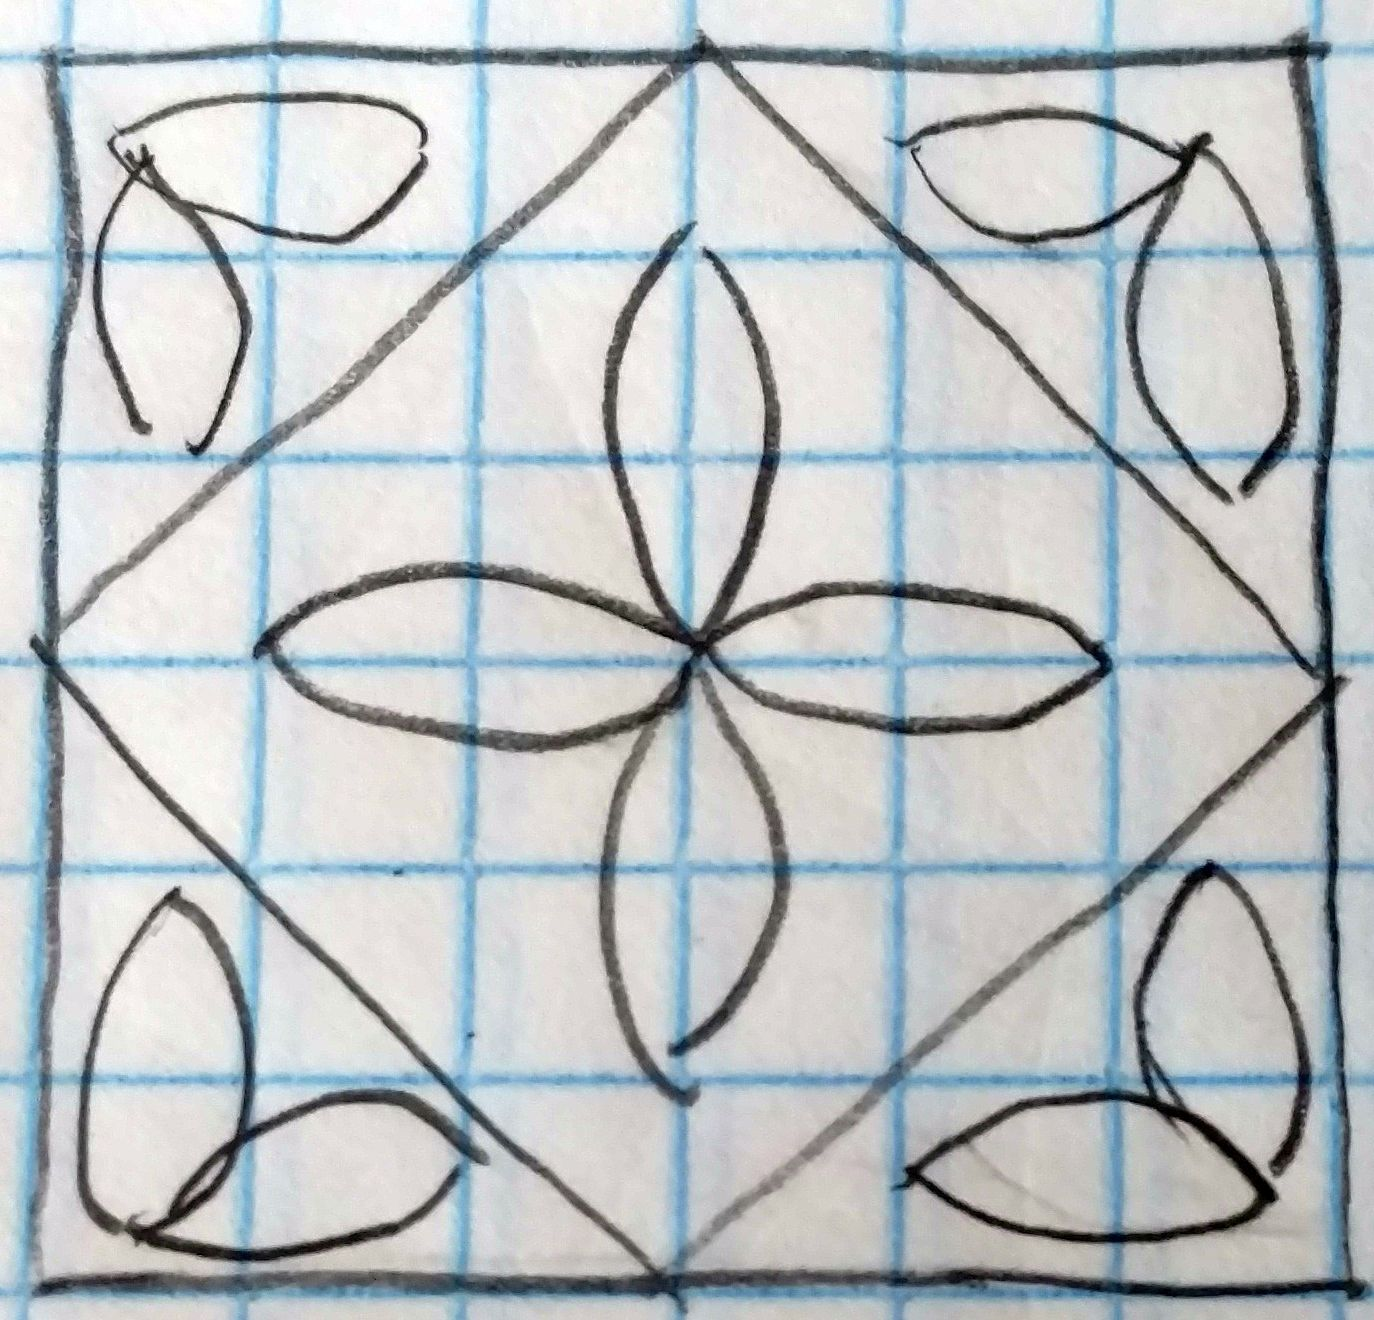 25 ways to quilt a Square in a Square block. | plantillas ...